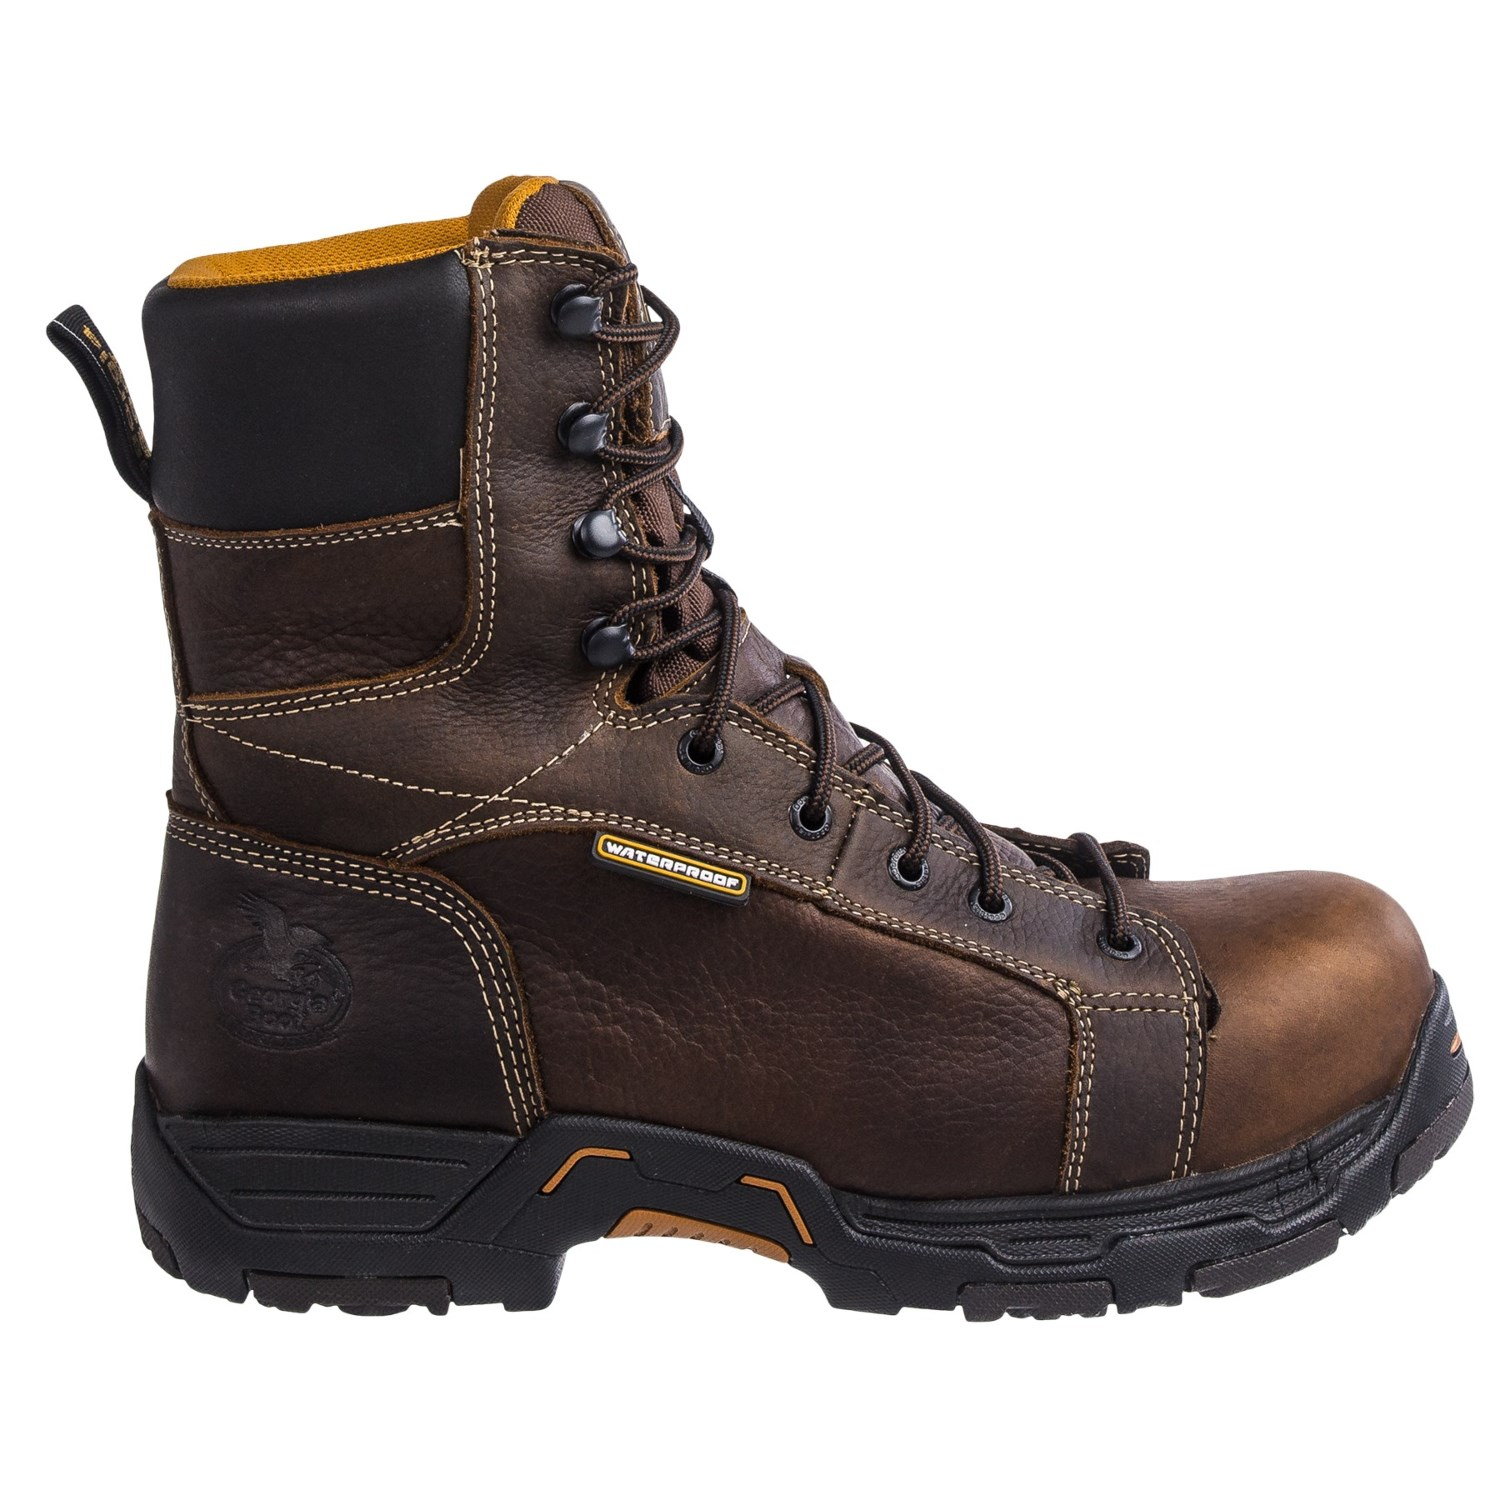 waterproof steel toe work boots reviews